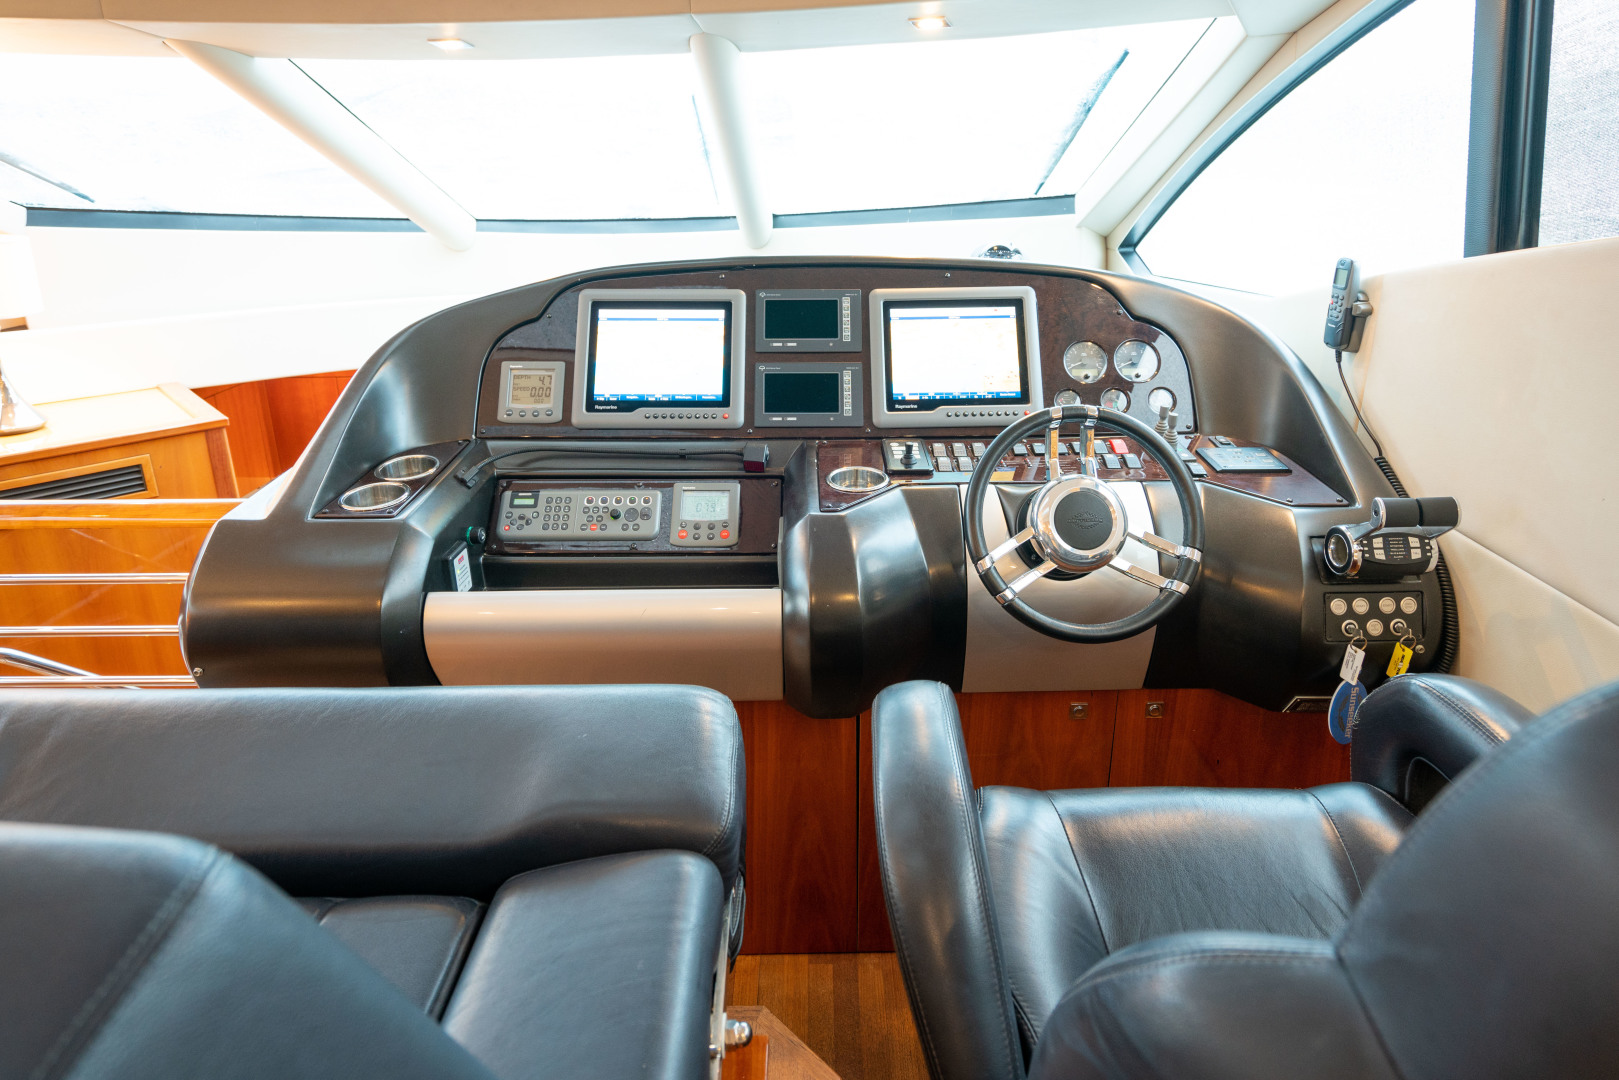 64 Sunseeker Helm